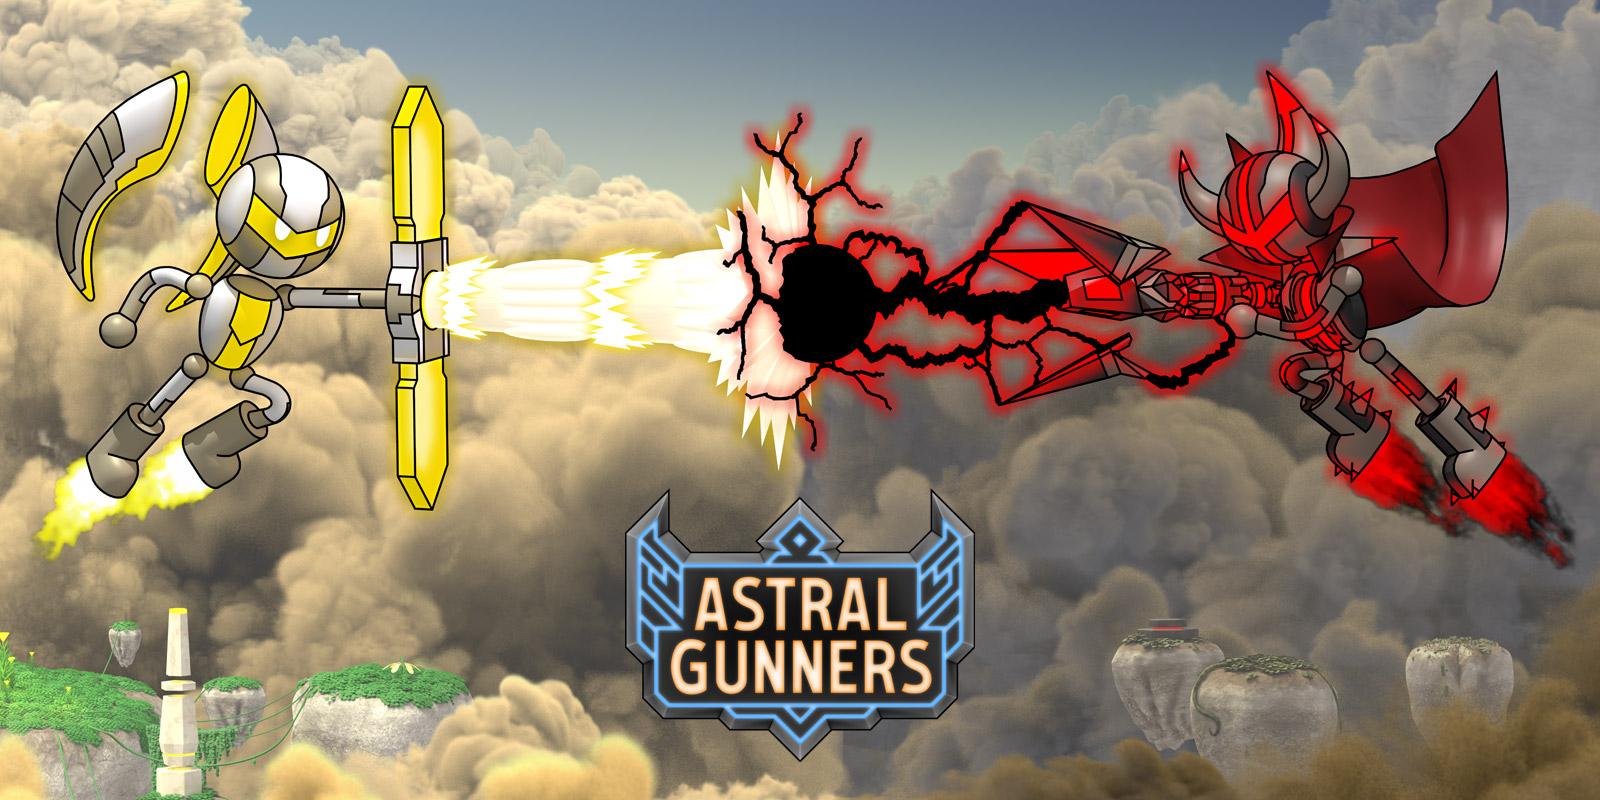 Astral Gunners